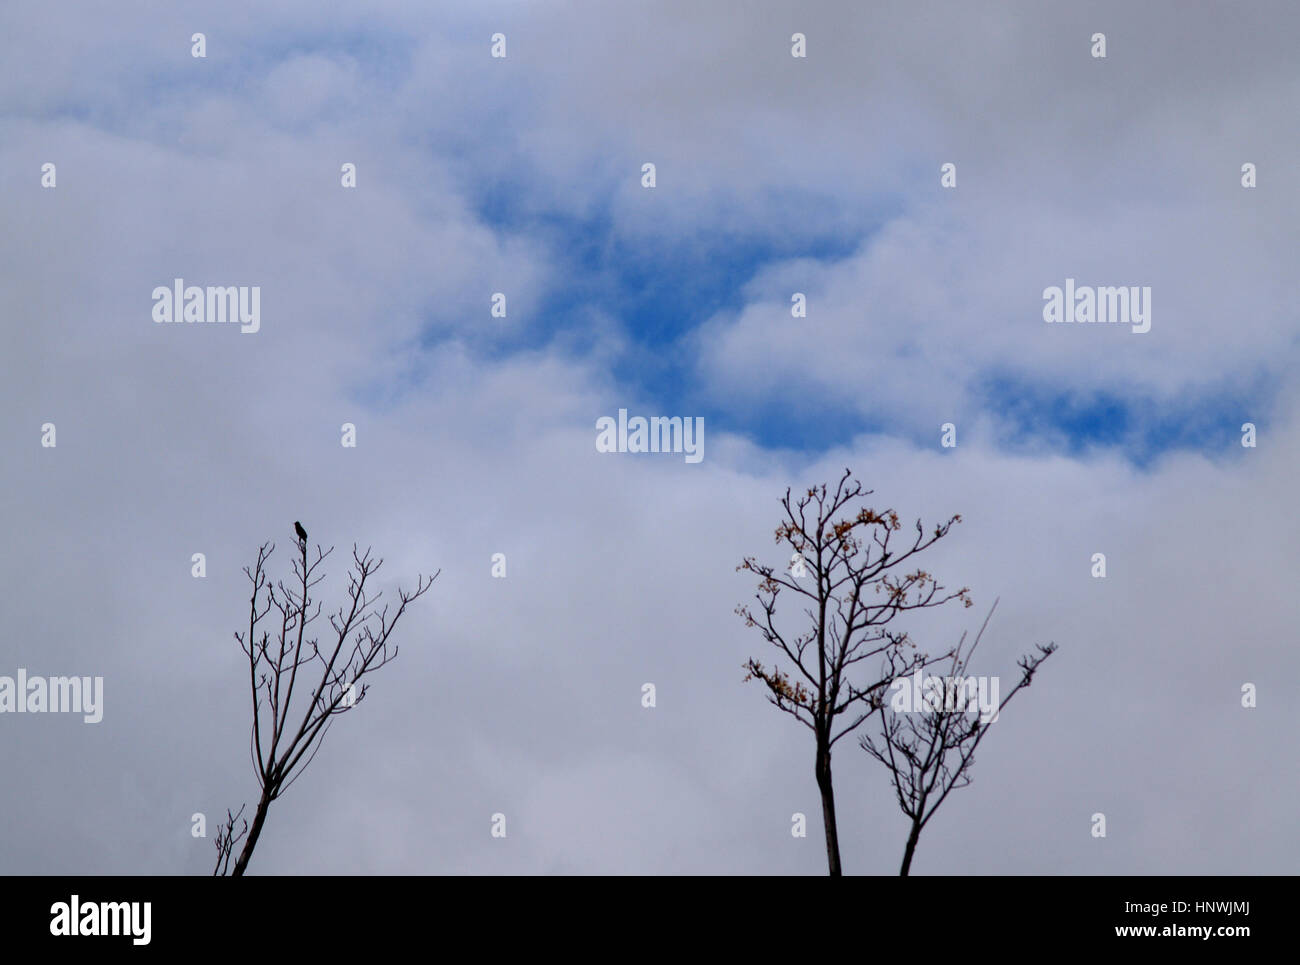 clouds, trees, bird and blue sky - Stock Image